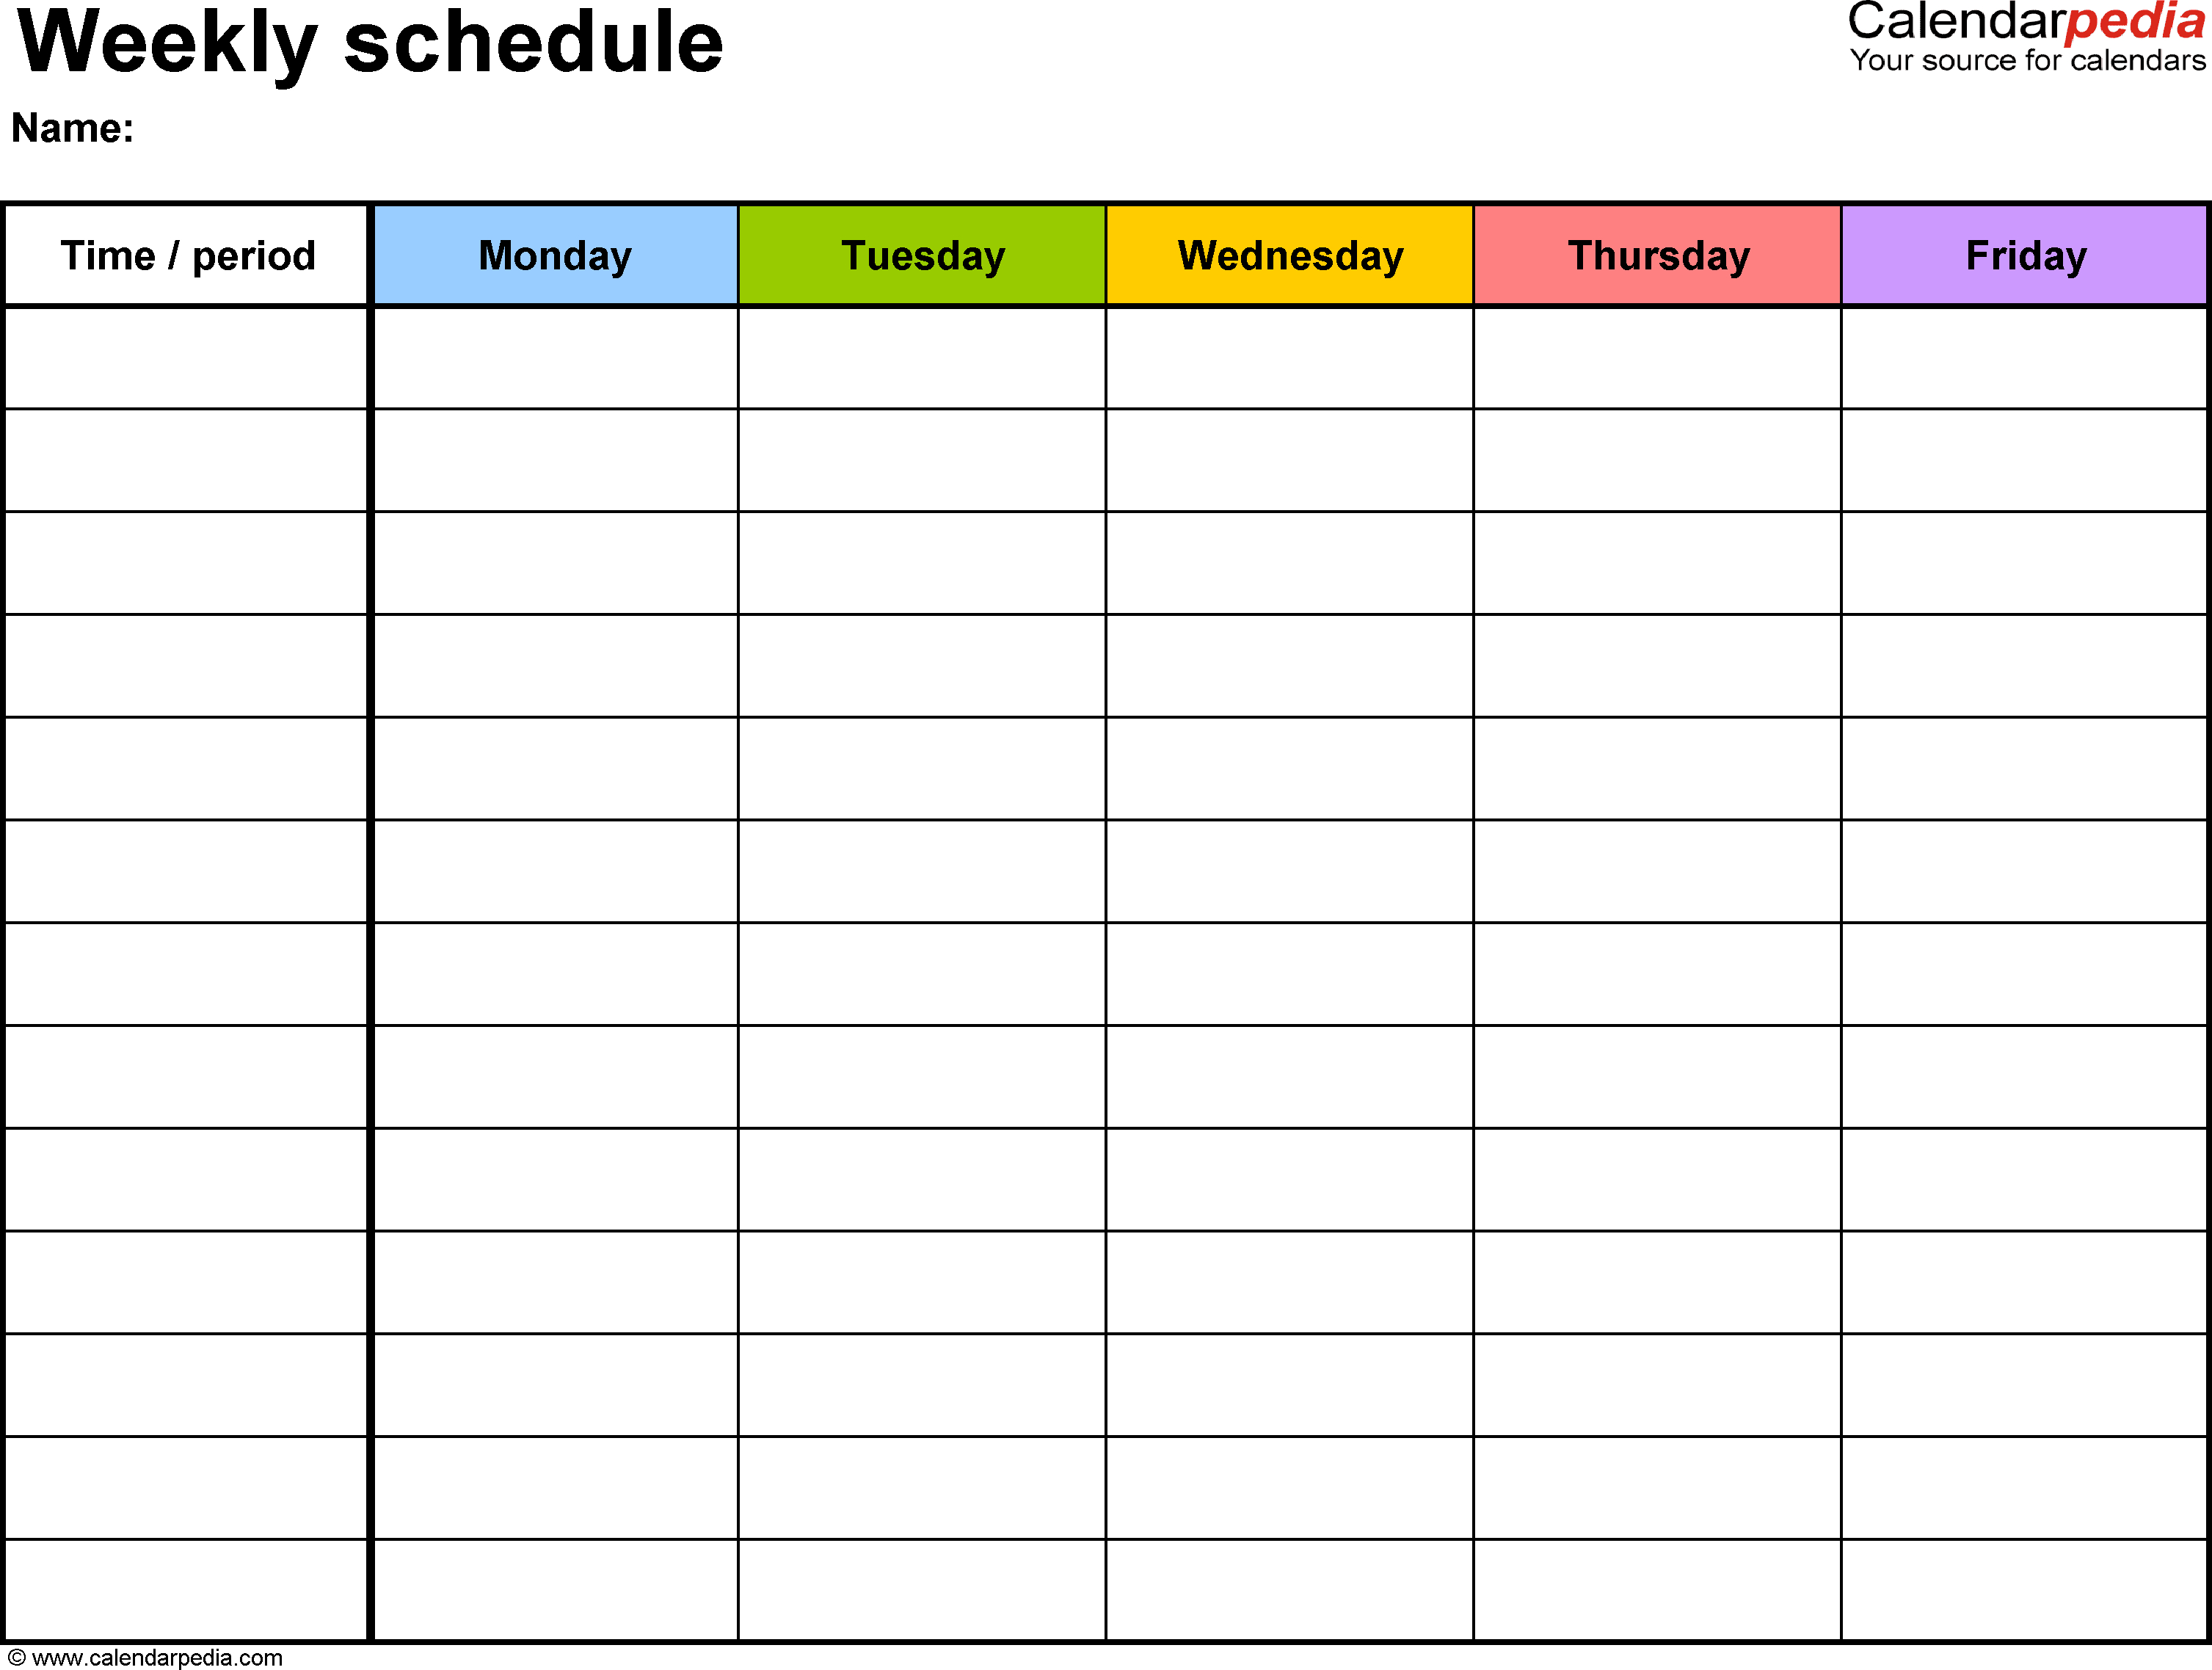 Free Weekly Schedule Templates For Word - 18 Templates with regard to 5 Day Work Schedule Template